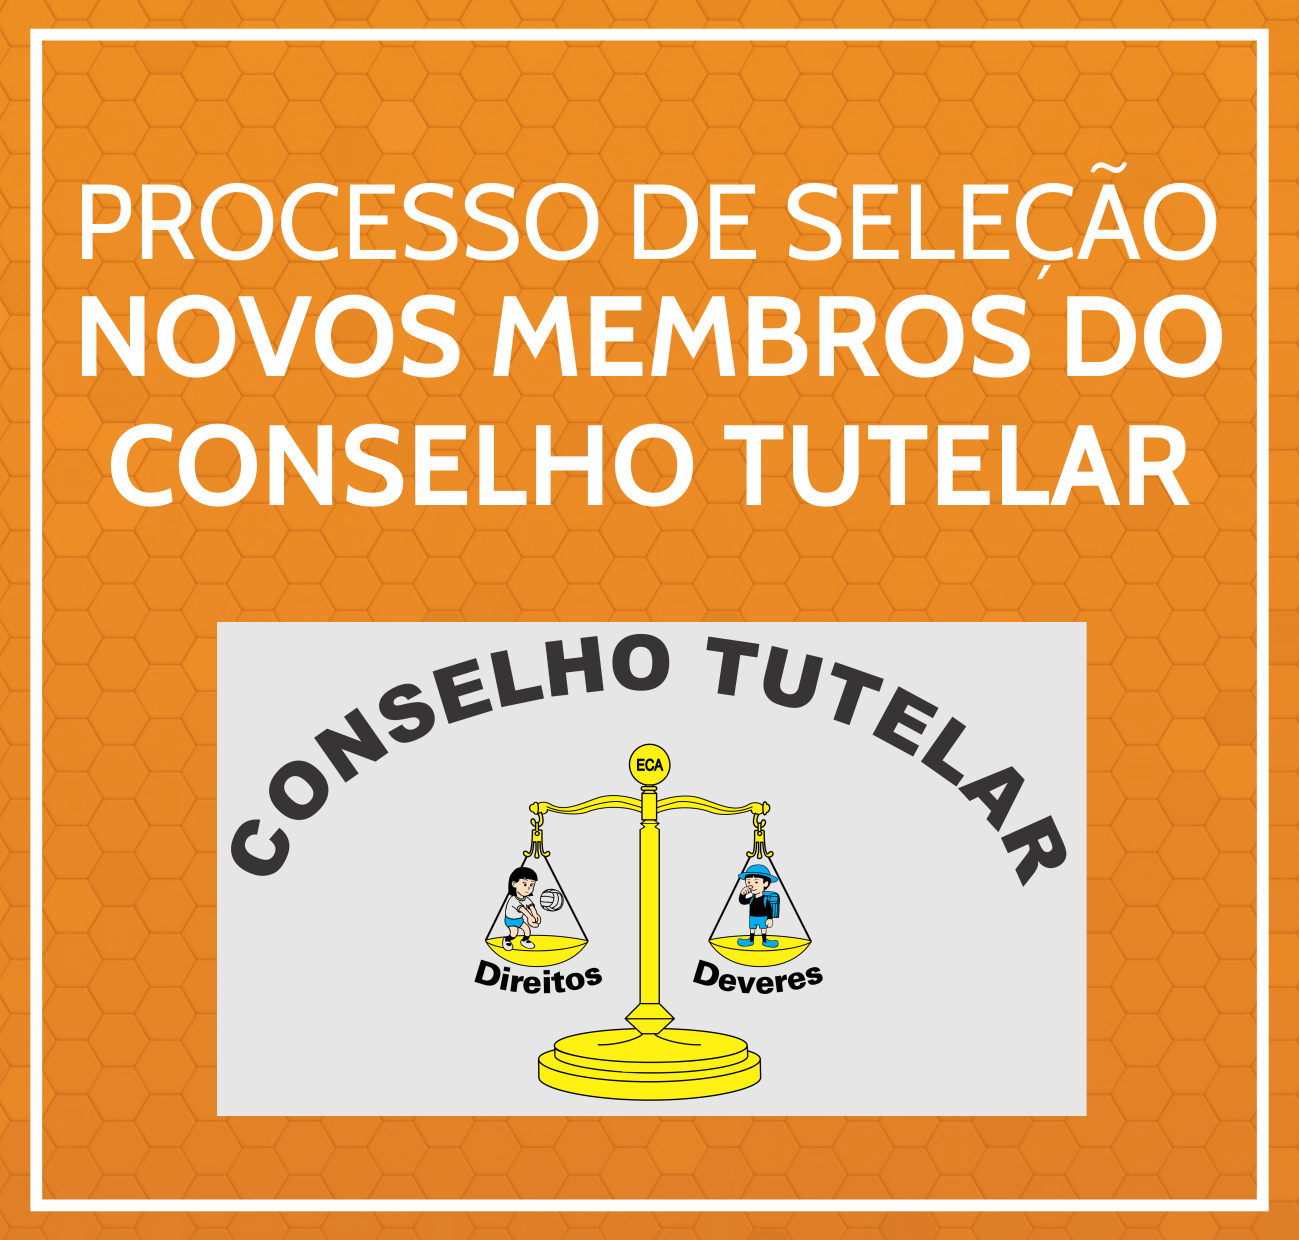 PROCESSO DE SELEÇÃO - NOVOS MEMBROS DO CONSELHO TUTELAR